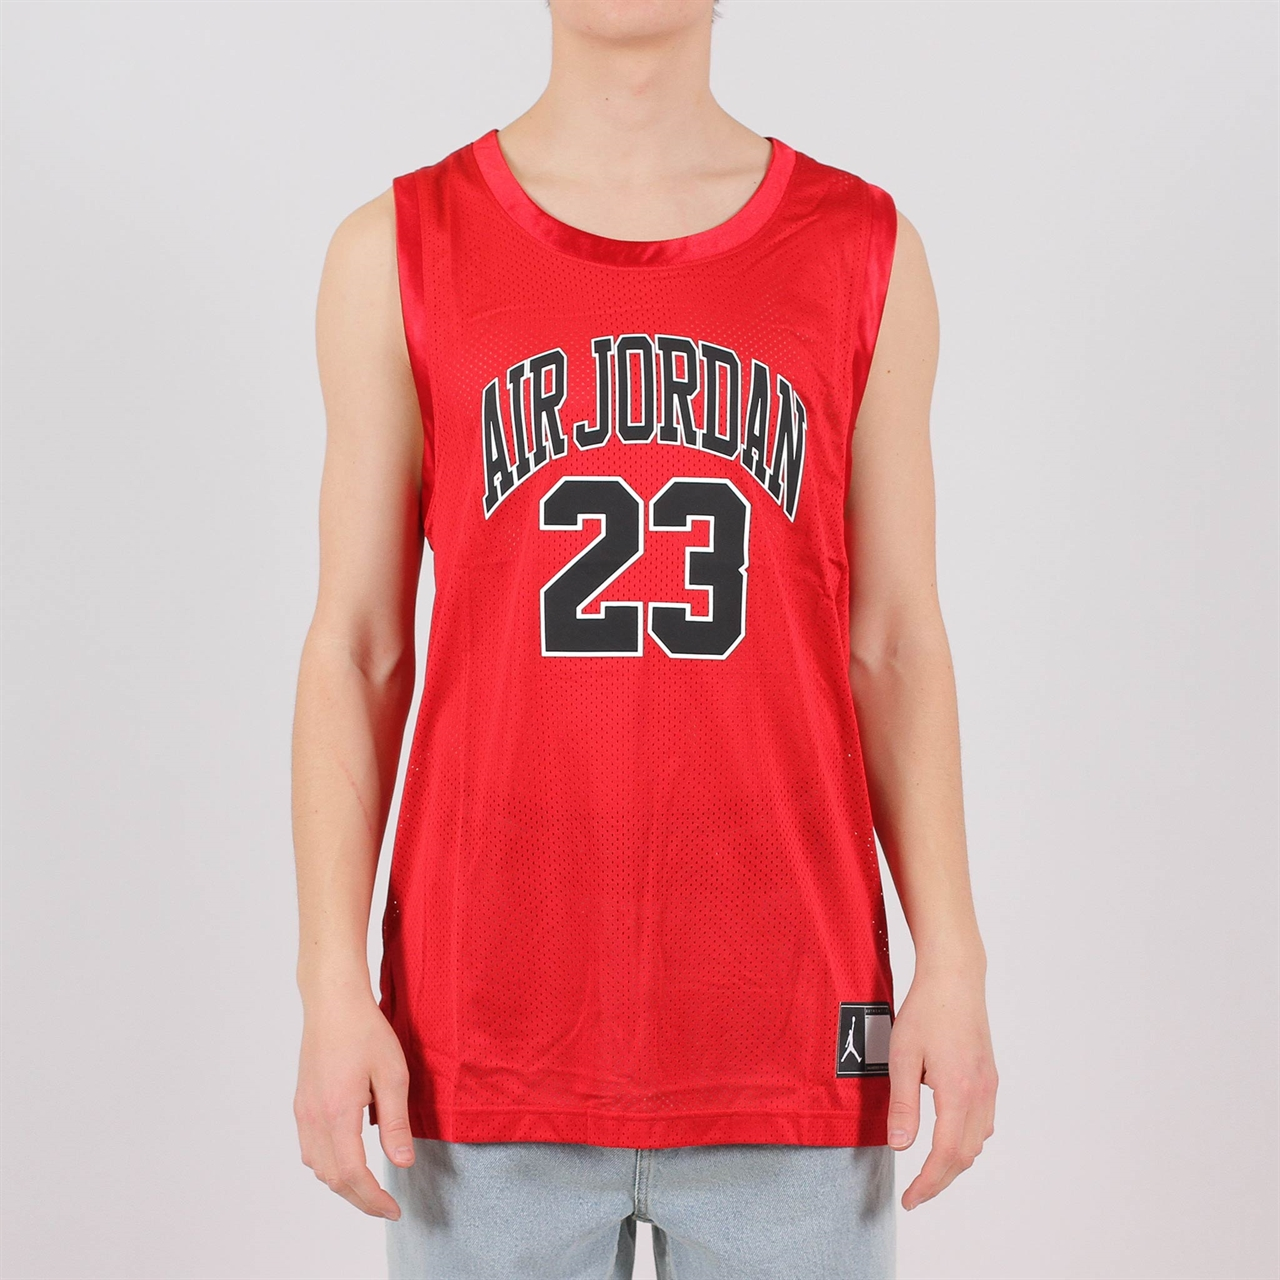 the best attitude b51da c0b00 Jordan DNA Distorted Basketball Jersey - SPORTING GOODS Sports Shirts    Casual Shirts - Superfanas.lt